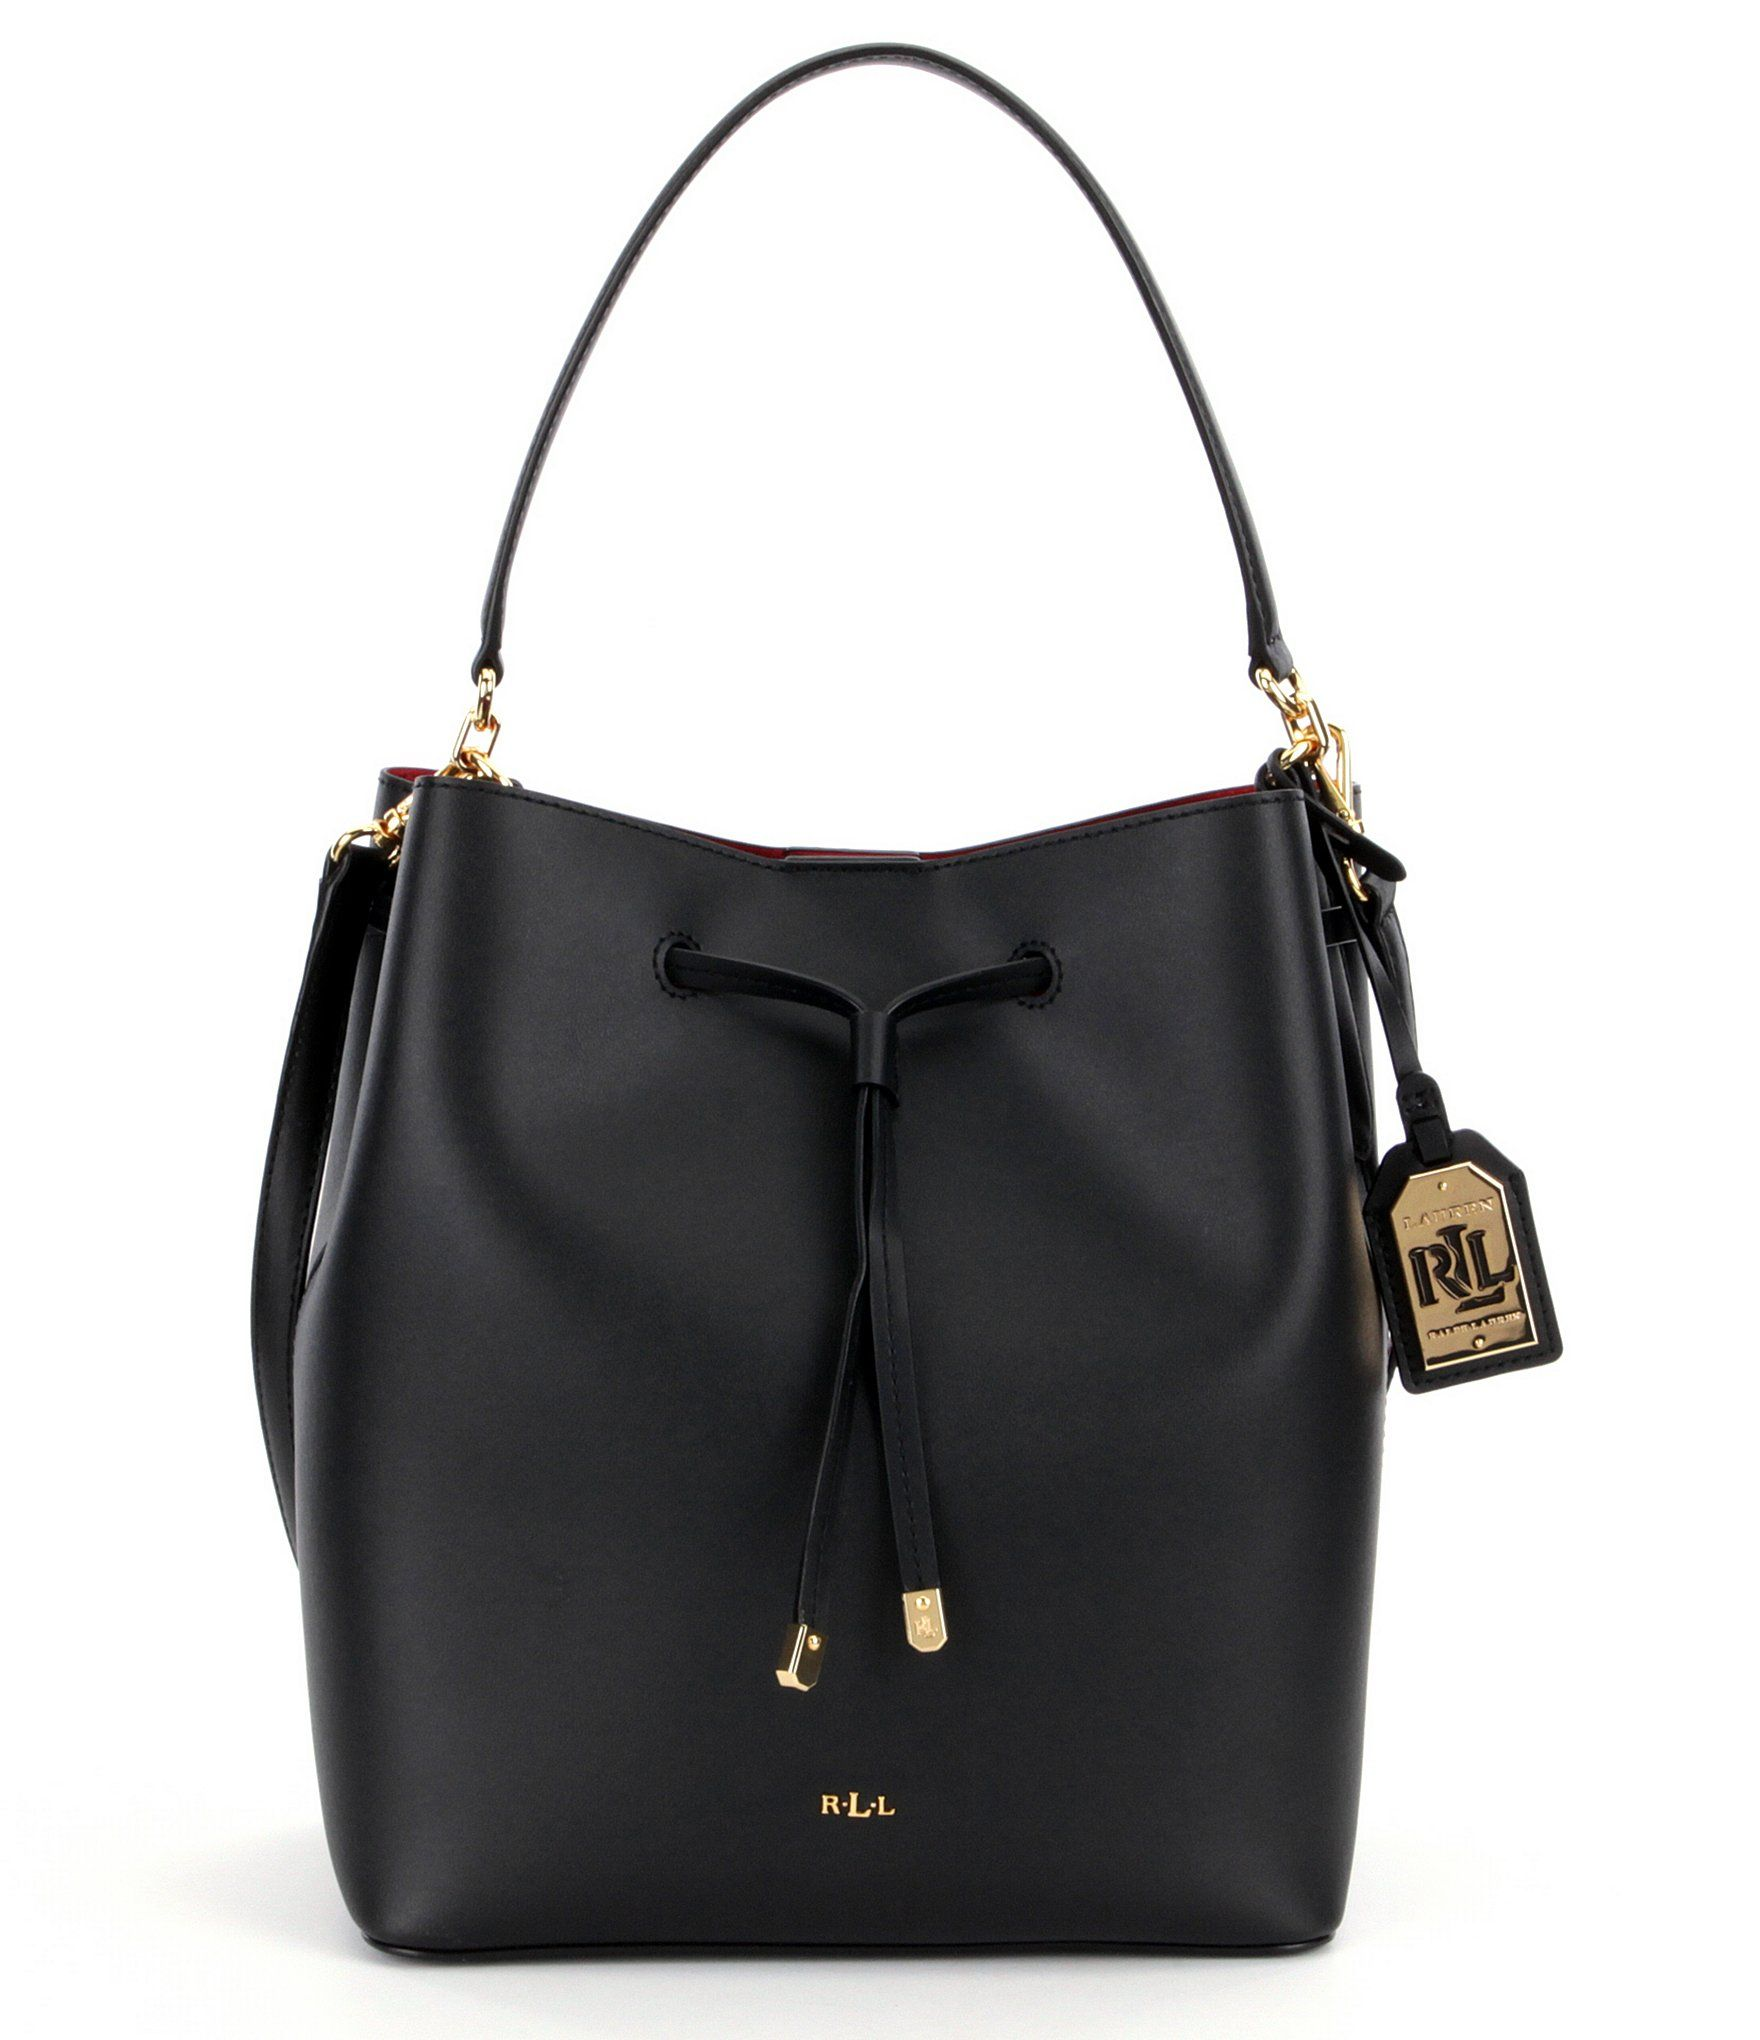 Shop for Lauren Ralph Lauren Debby Drawstring Bag with Pouch at  Dillards.com. Visit Dillards.com to find clothing, accessories, shoes,  cosmetics   more. 4e9e7bb34b